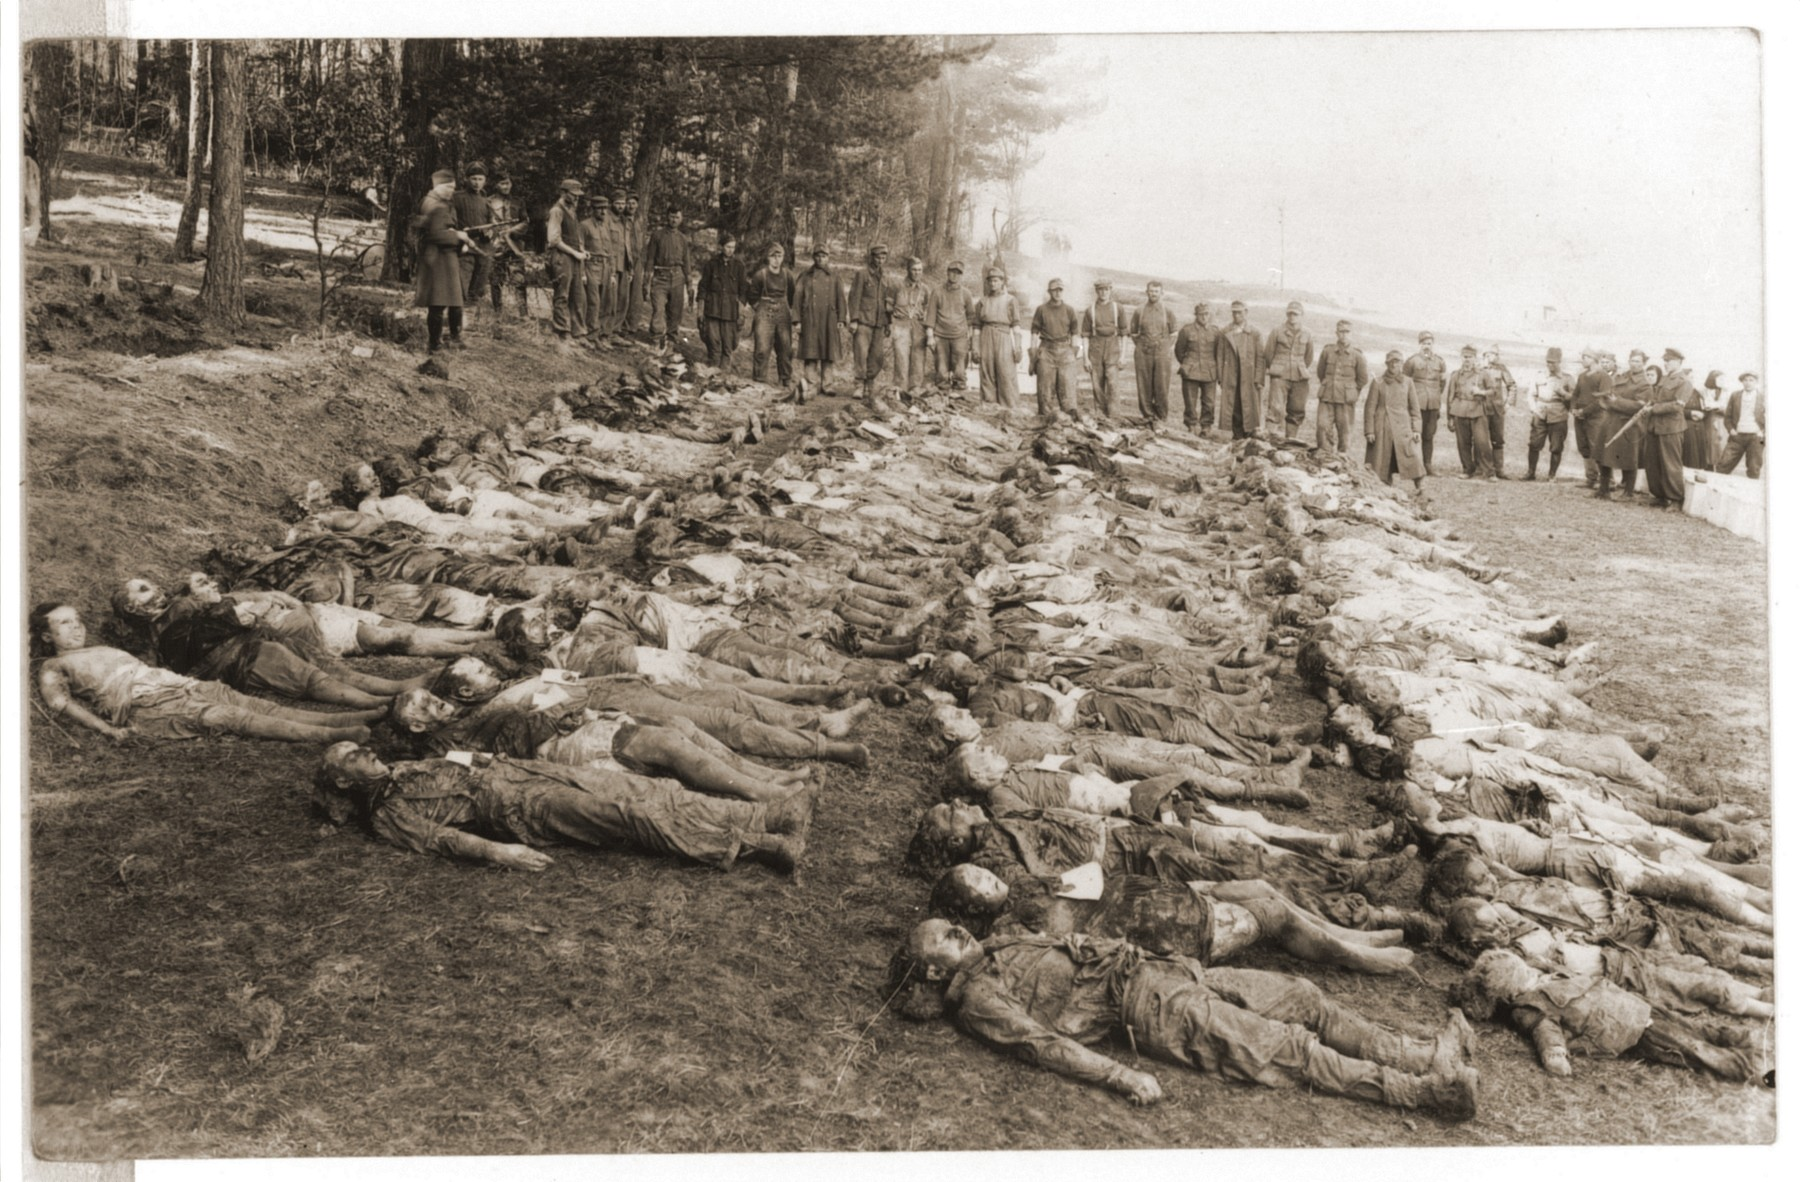 German POW's are forced by Soviet guards to rebury corpses exhumed from a mass grave in Czechoslovakia.  The victims consist of men, women, and children.